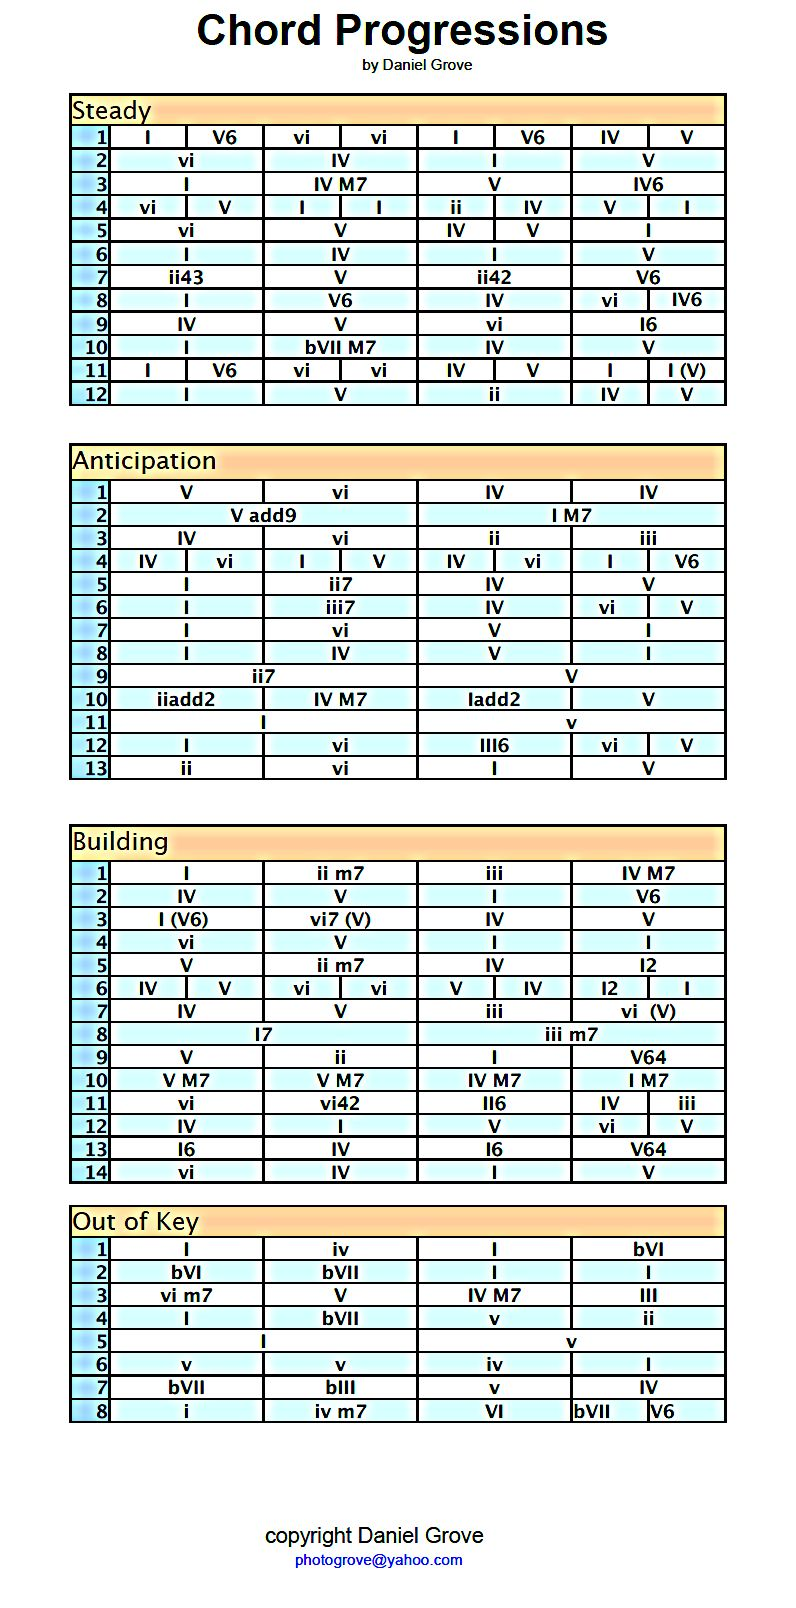 A chord progression cheat sheet I made after discovering the greatness of the chord-numbering system. Once you know all the chords in any major scale you can use this number system to jam or write songs.